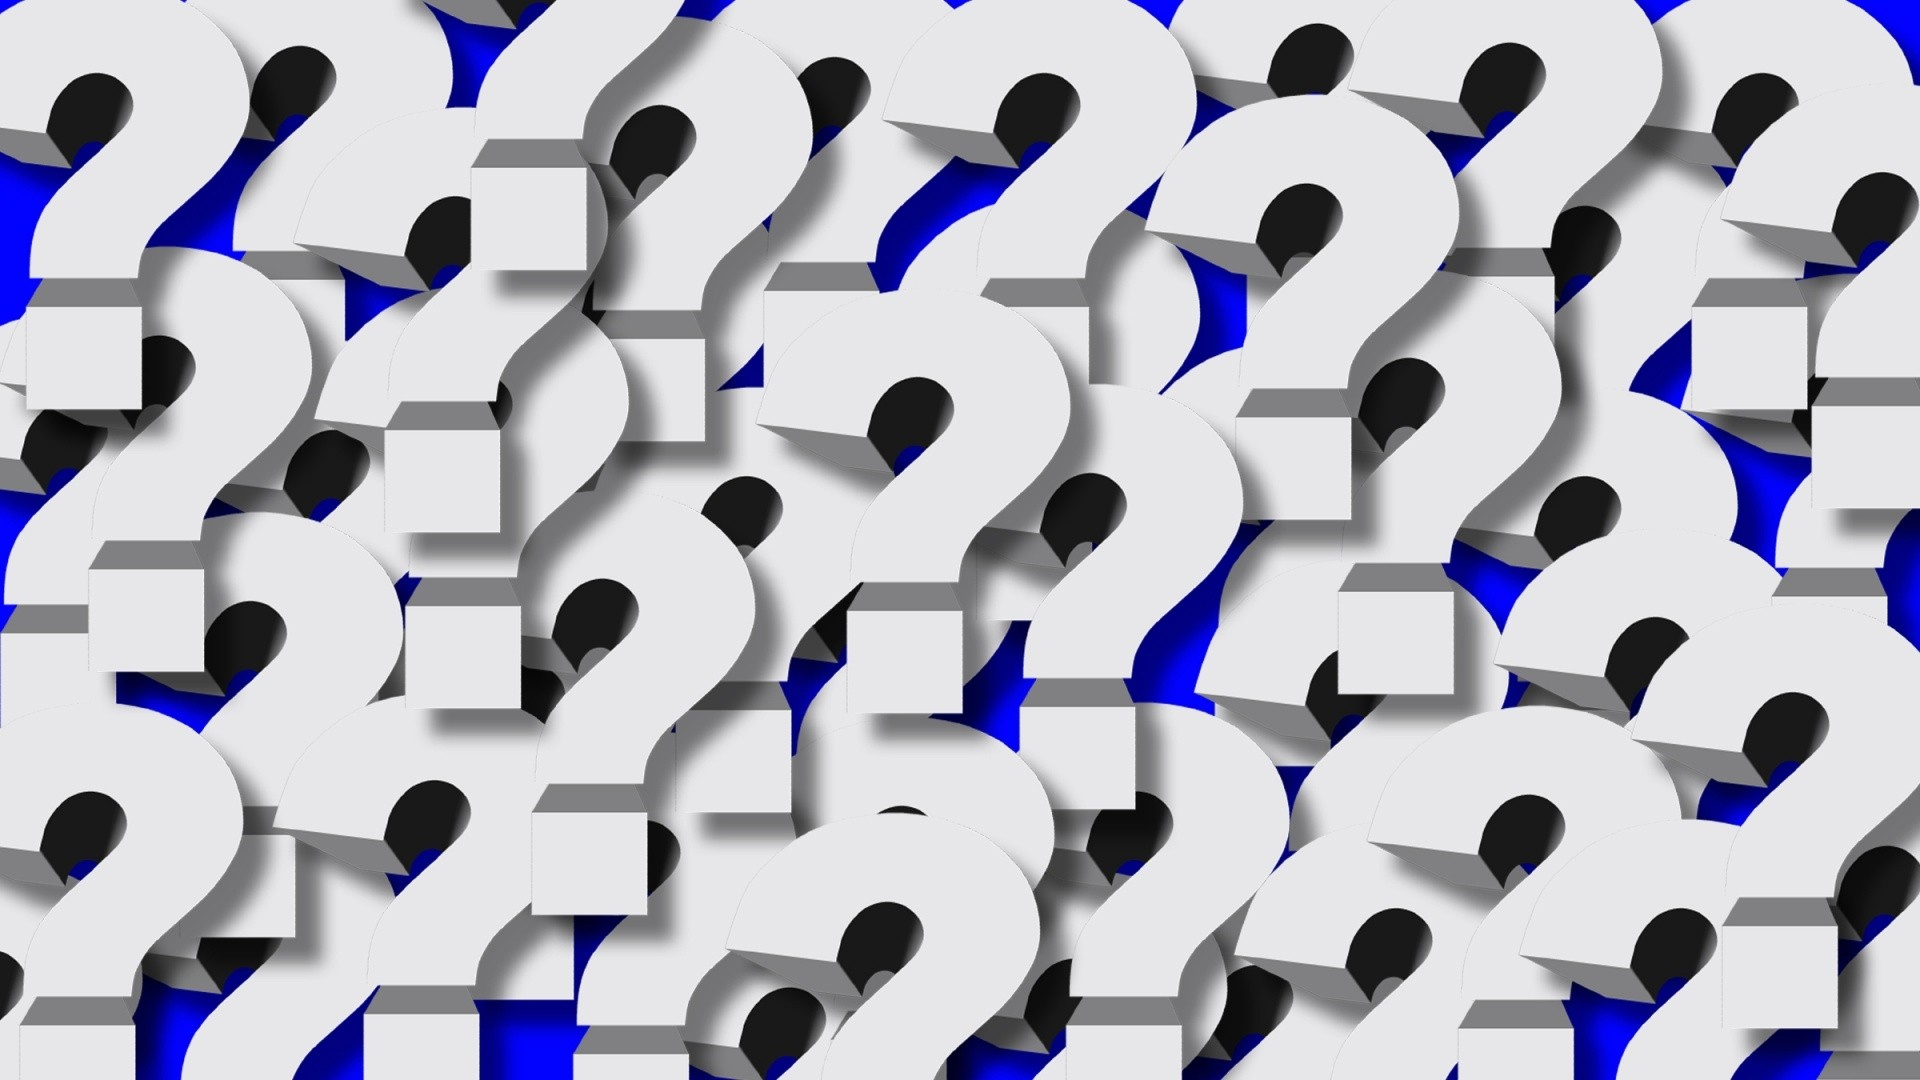 Question Mark Wallpaper for pc